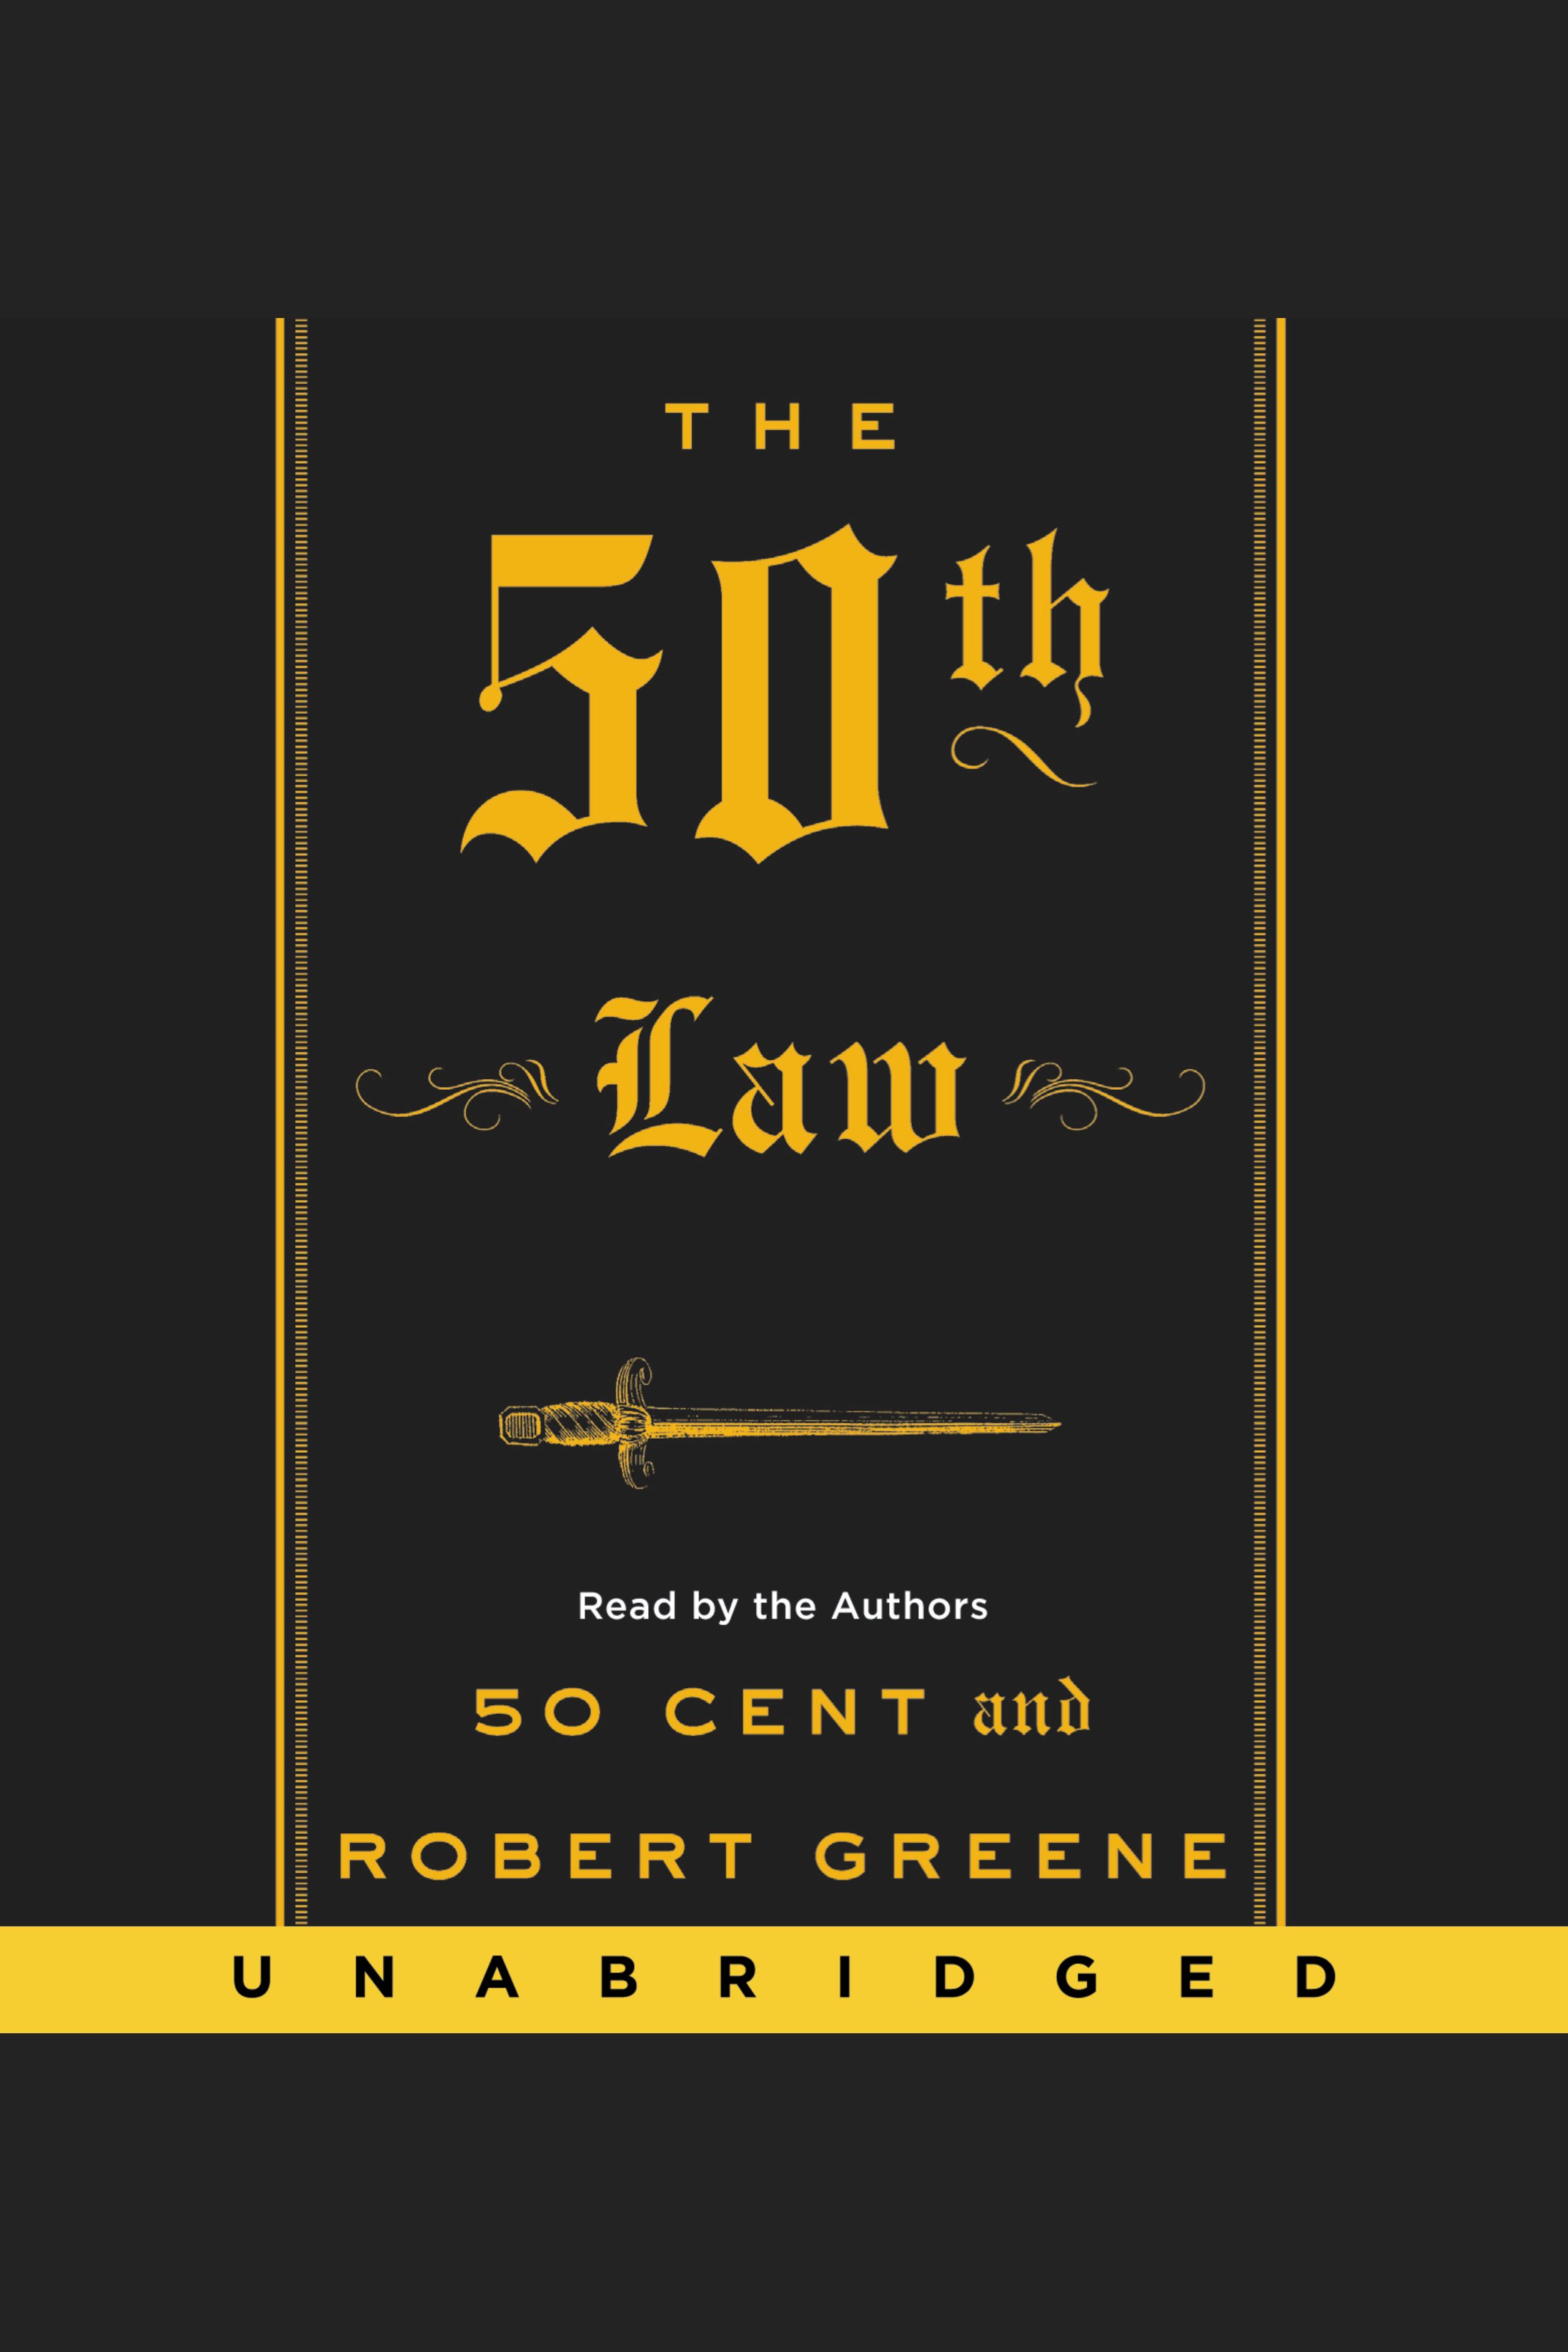 The 50th law cover image